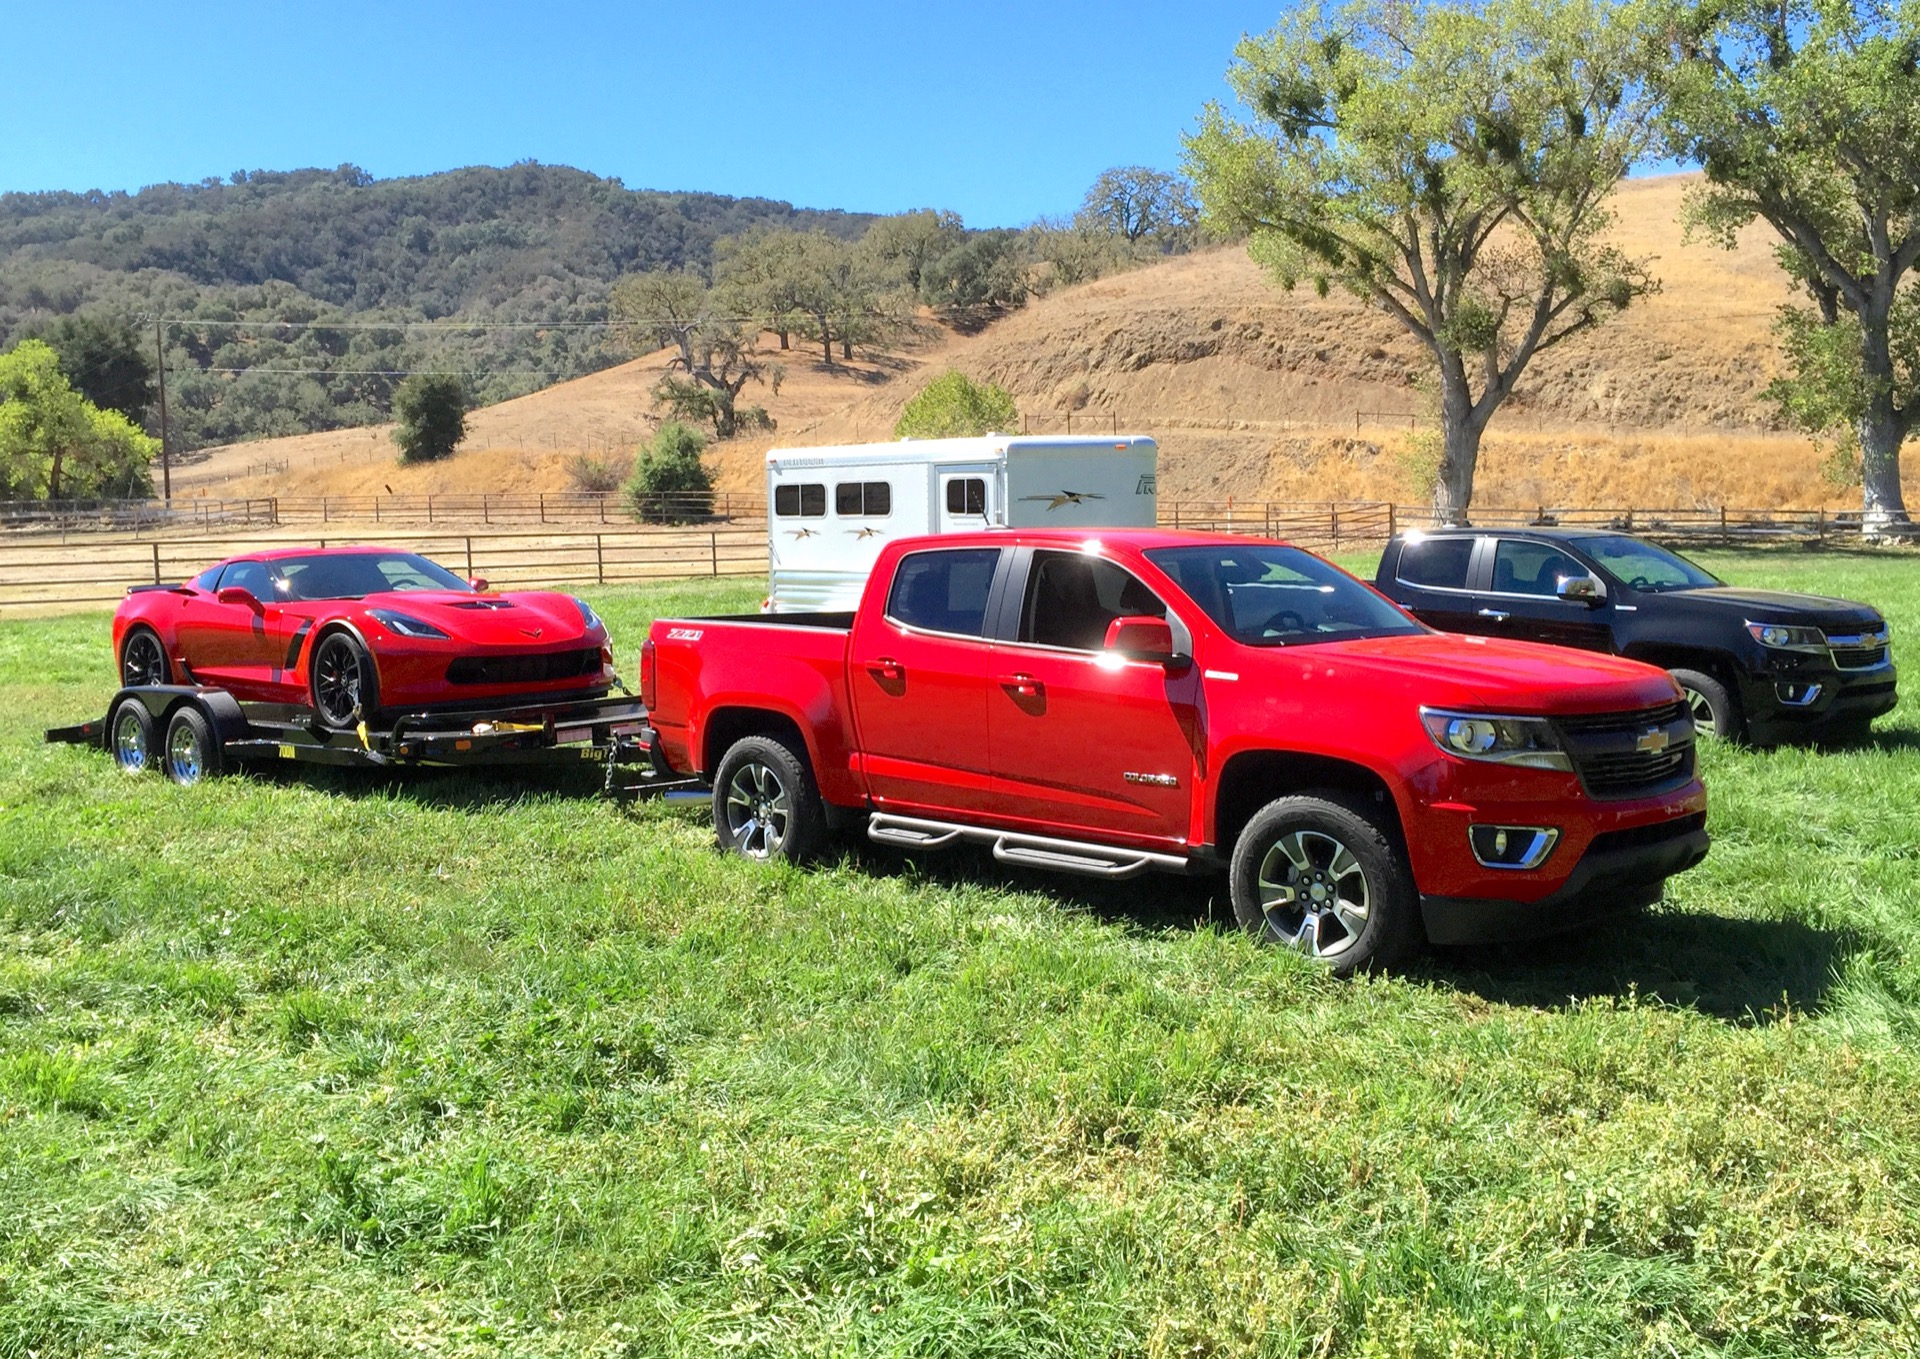 2016 Chevy Colorado: V-6 Or Duramax Diesel?